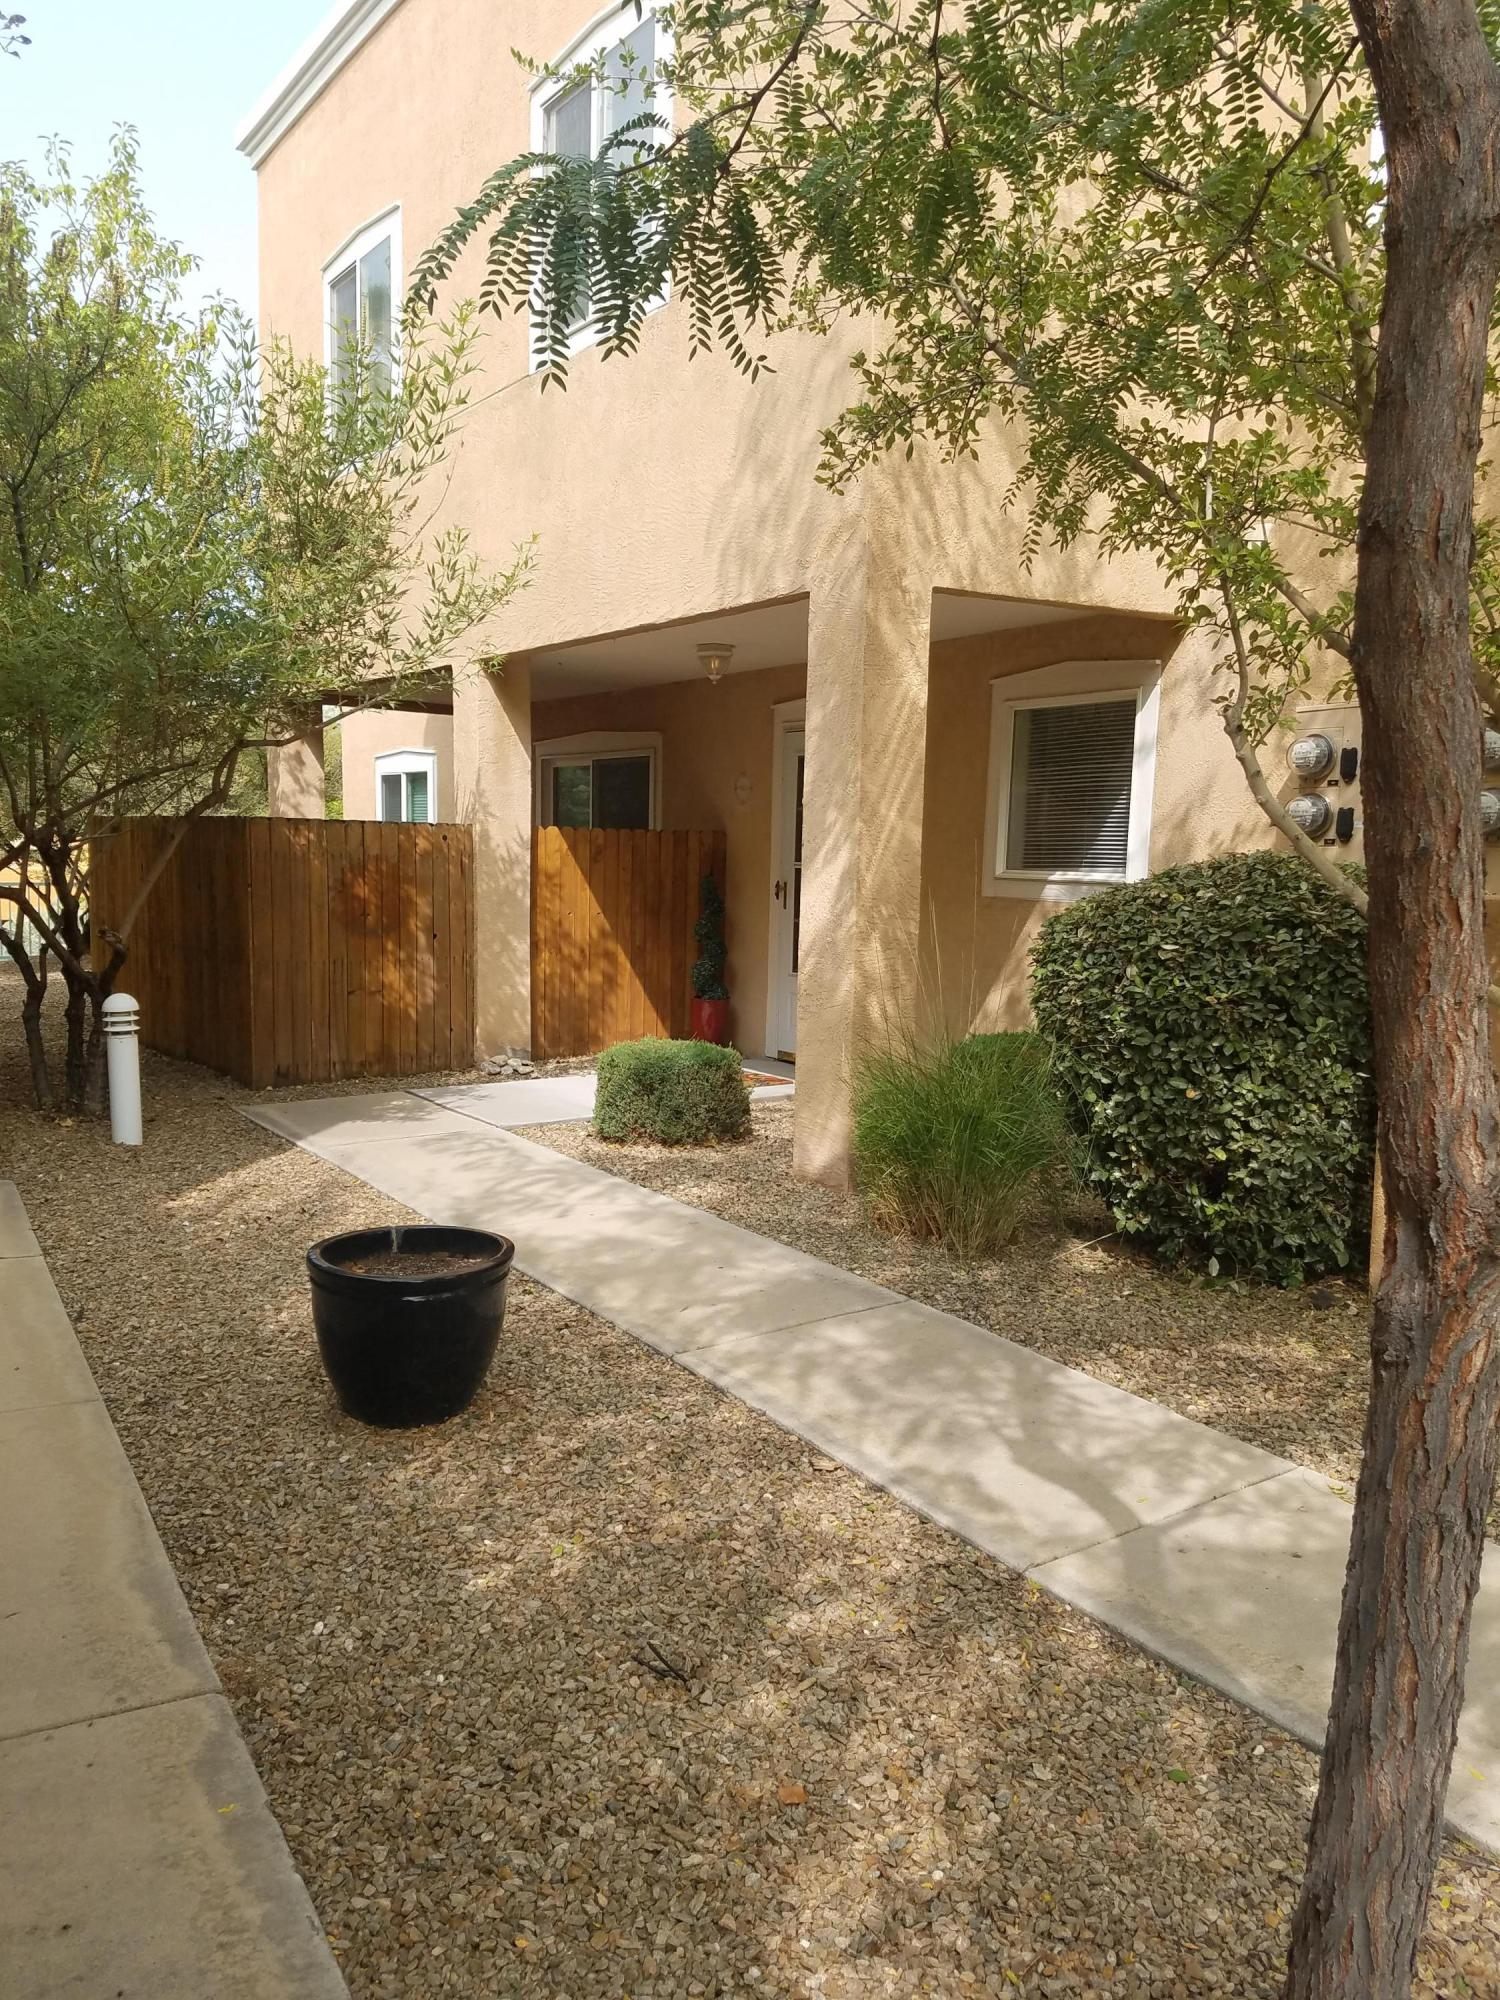 Great 3 bedroom, 3 bath Condo in highly desired NE Heights gated community.  New paint throughout, new swamp cooler, wood laminate flooring downstairs. Bedrooms on upper level with amazing views of the Sandias. Living room has gas fireplace and right off of living room is covered patio. Laundry room and half bath right off of dining room. 1 car garage with opener. Walking/Bike path right out your door and huge park nearby.  Great views ~ Great Location!